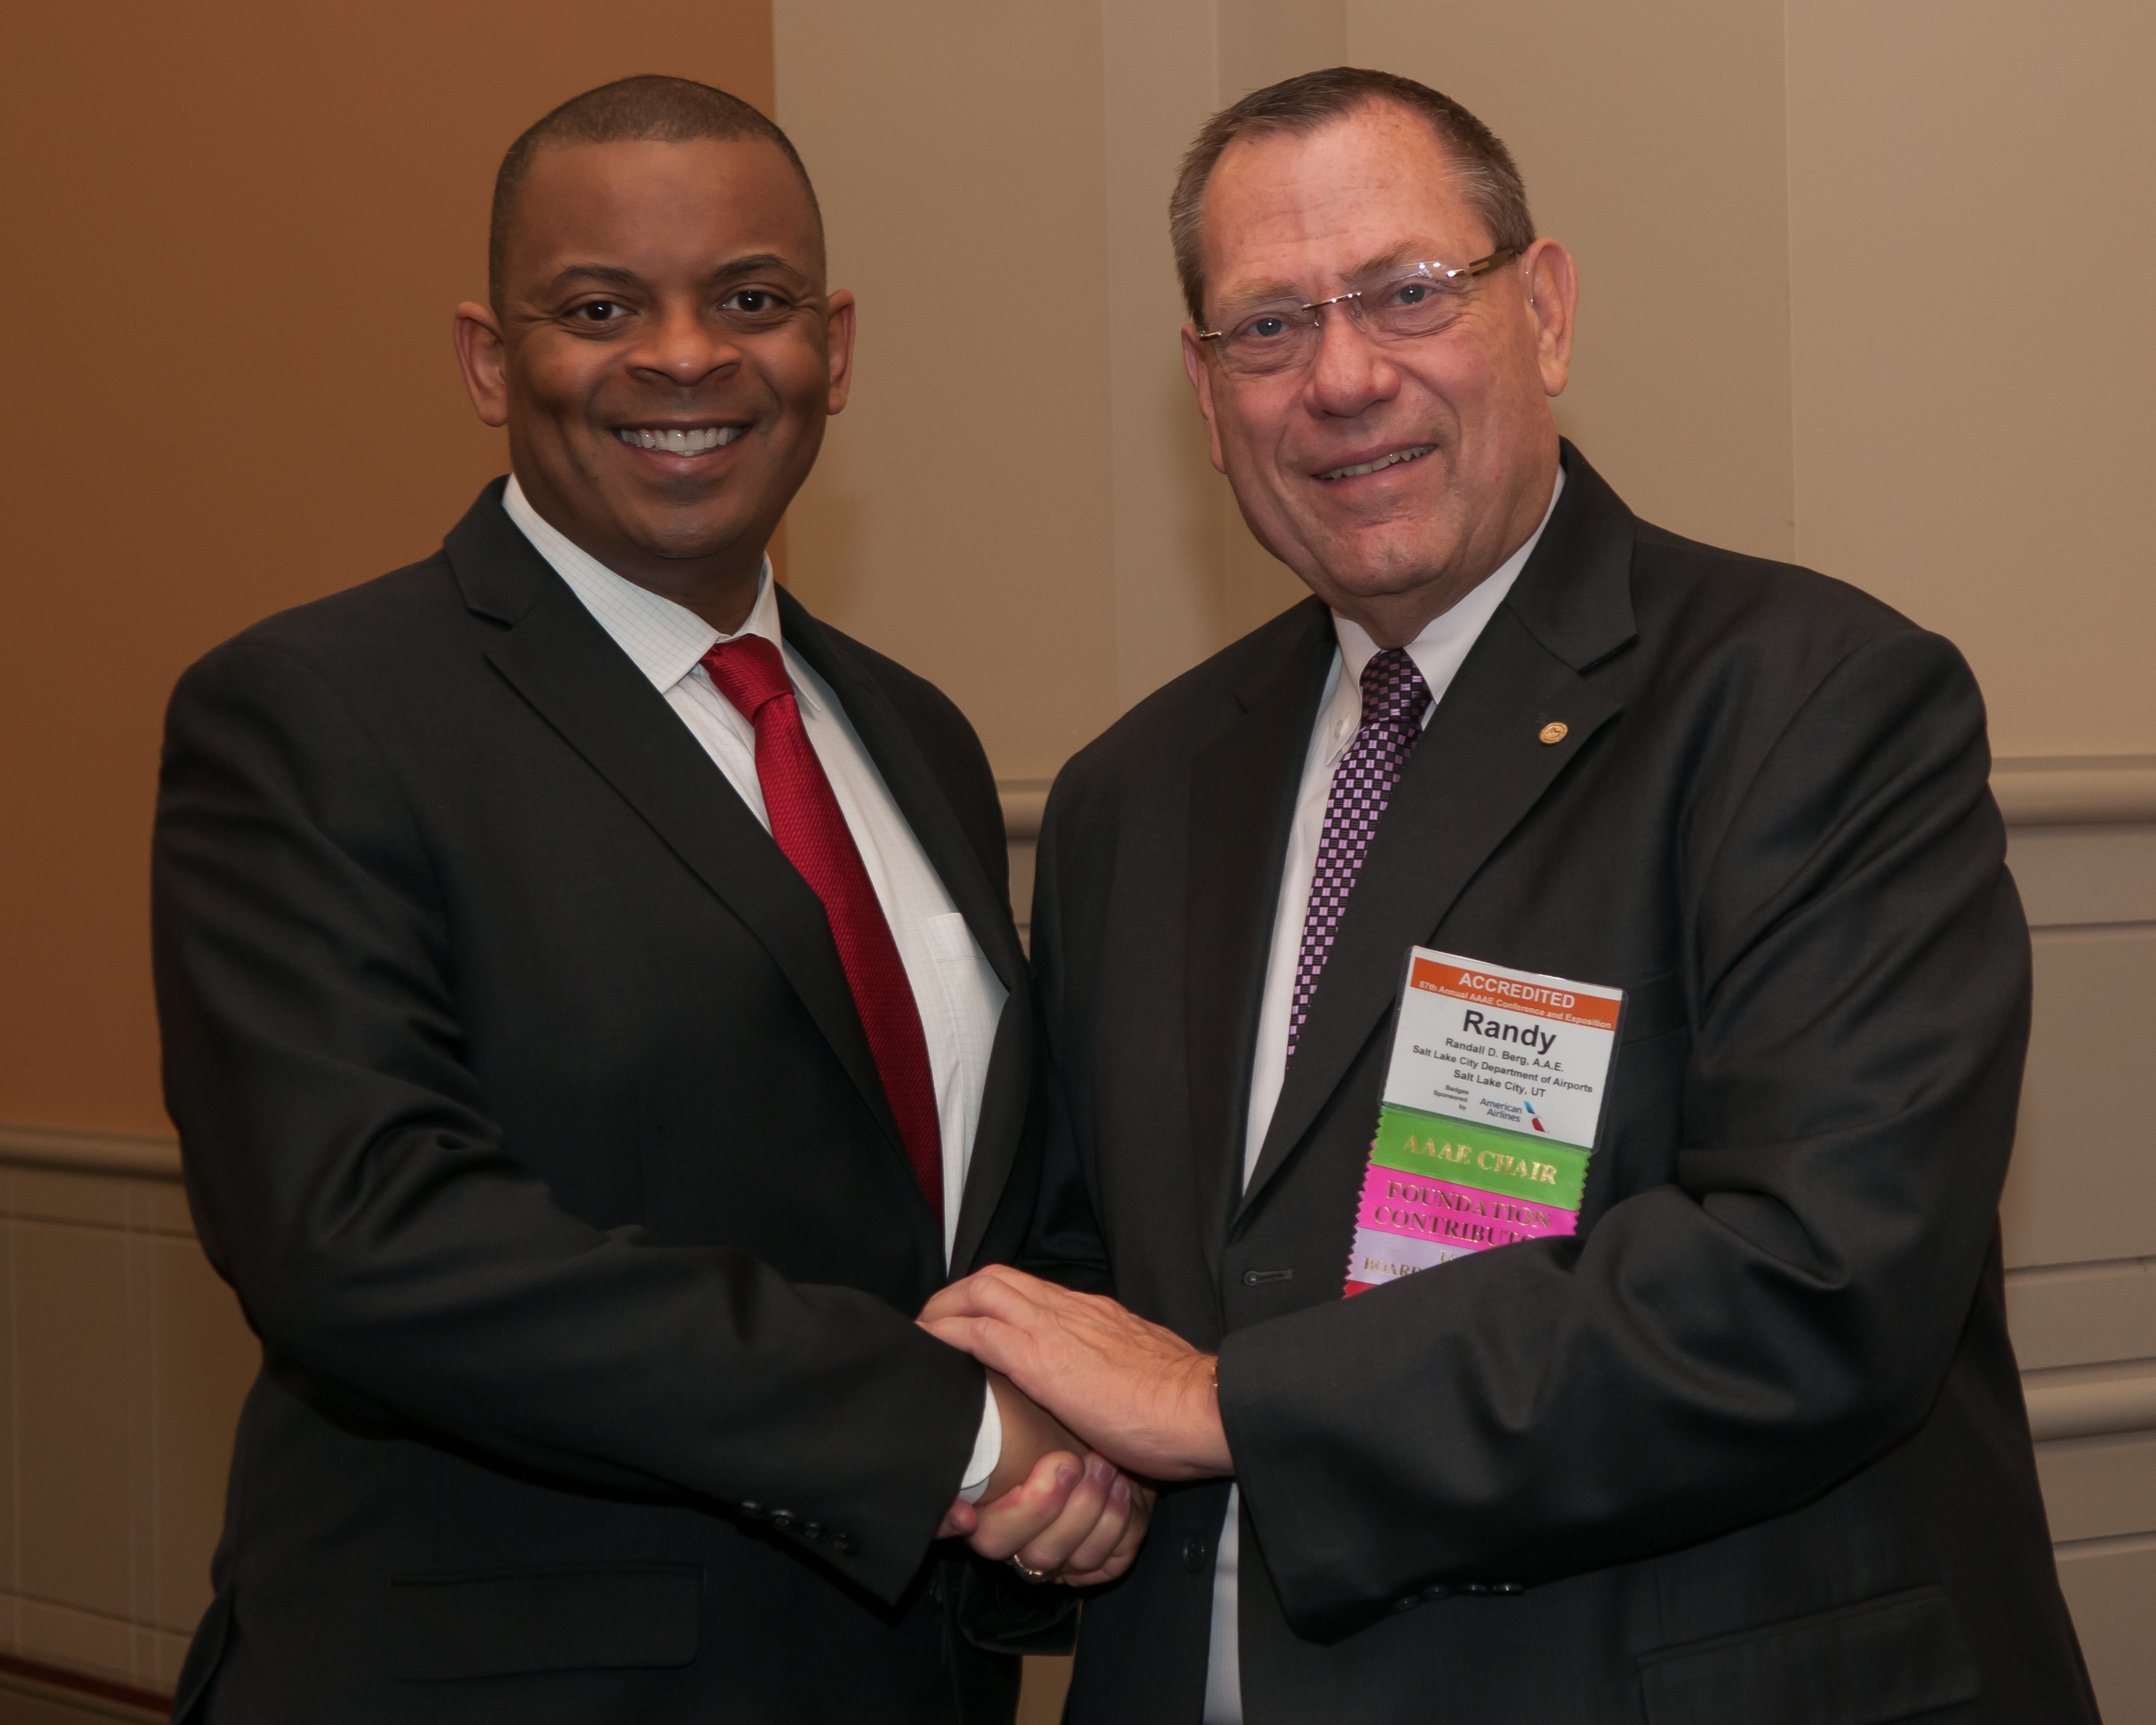 Randy and Secretary Foxx